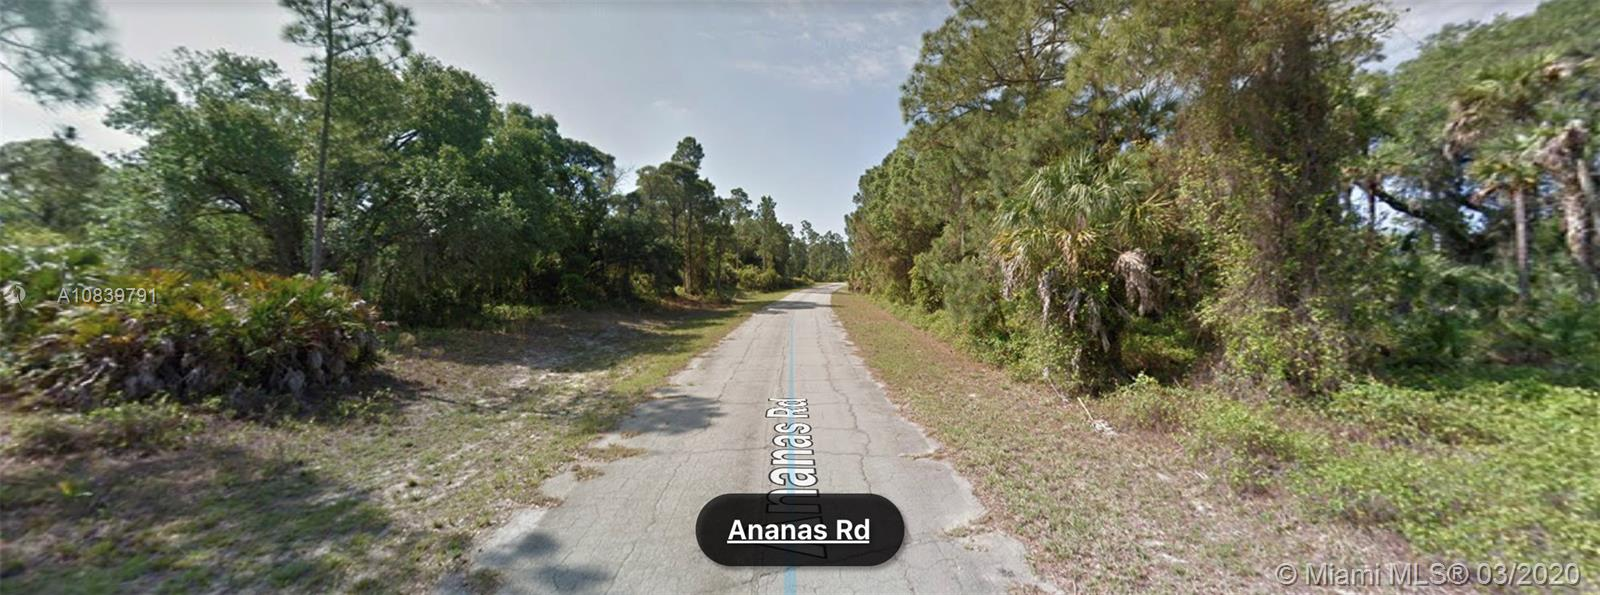 ANANAS RD NORTH PORT, Other City - In The State Of Florida, FL 34288